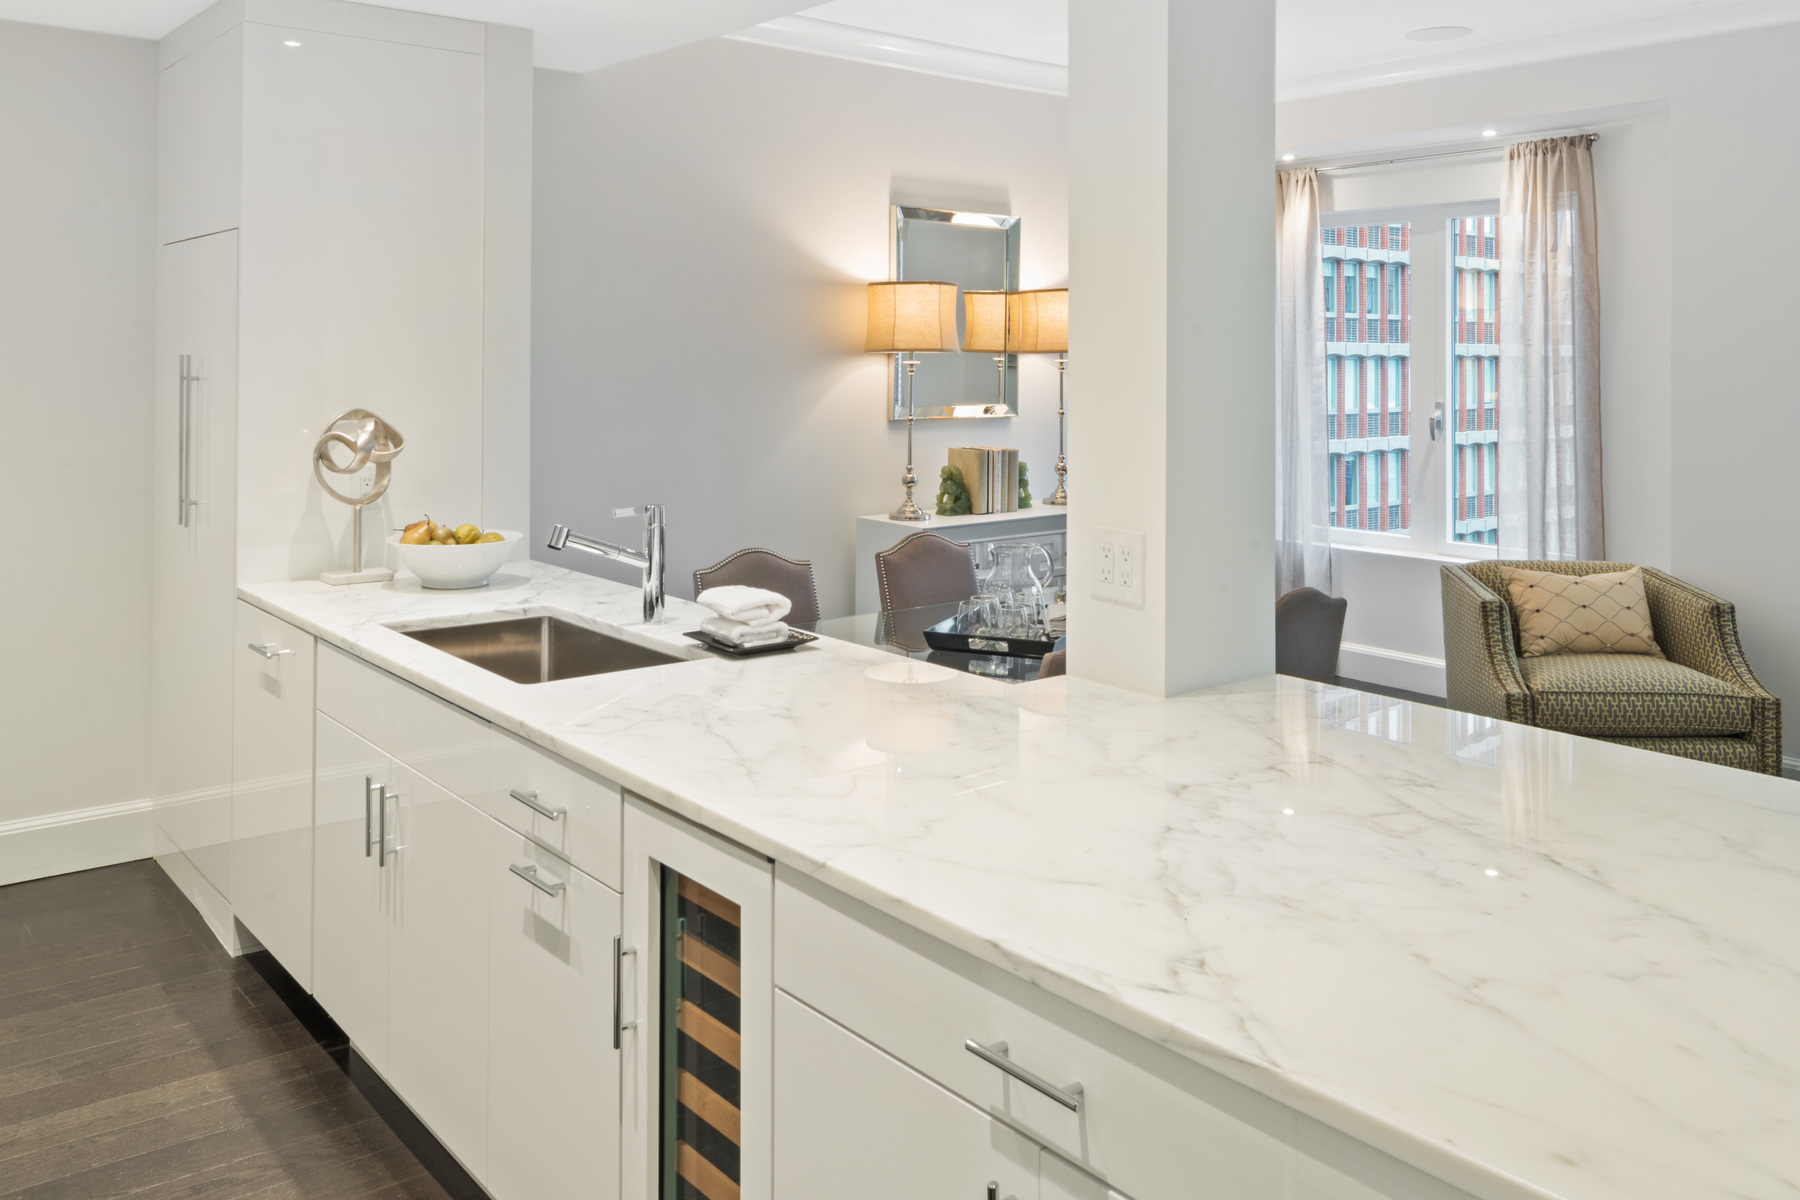 Additional photo for property listing at Ultimate Living Experience At The Mandarin 778 Boylston Street Unit 7E,  Boston, Massachusetts 02116 United States